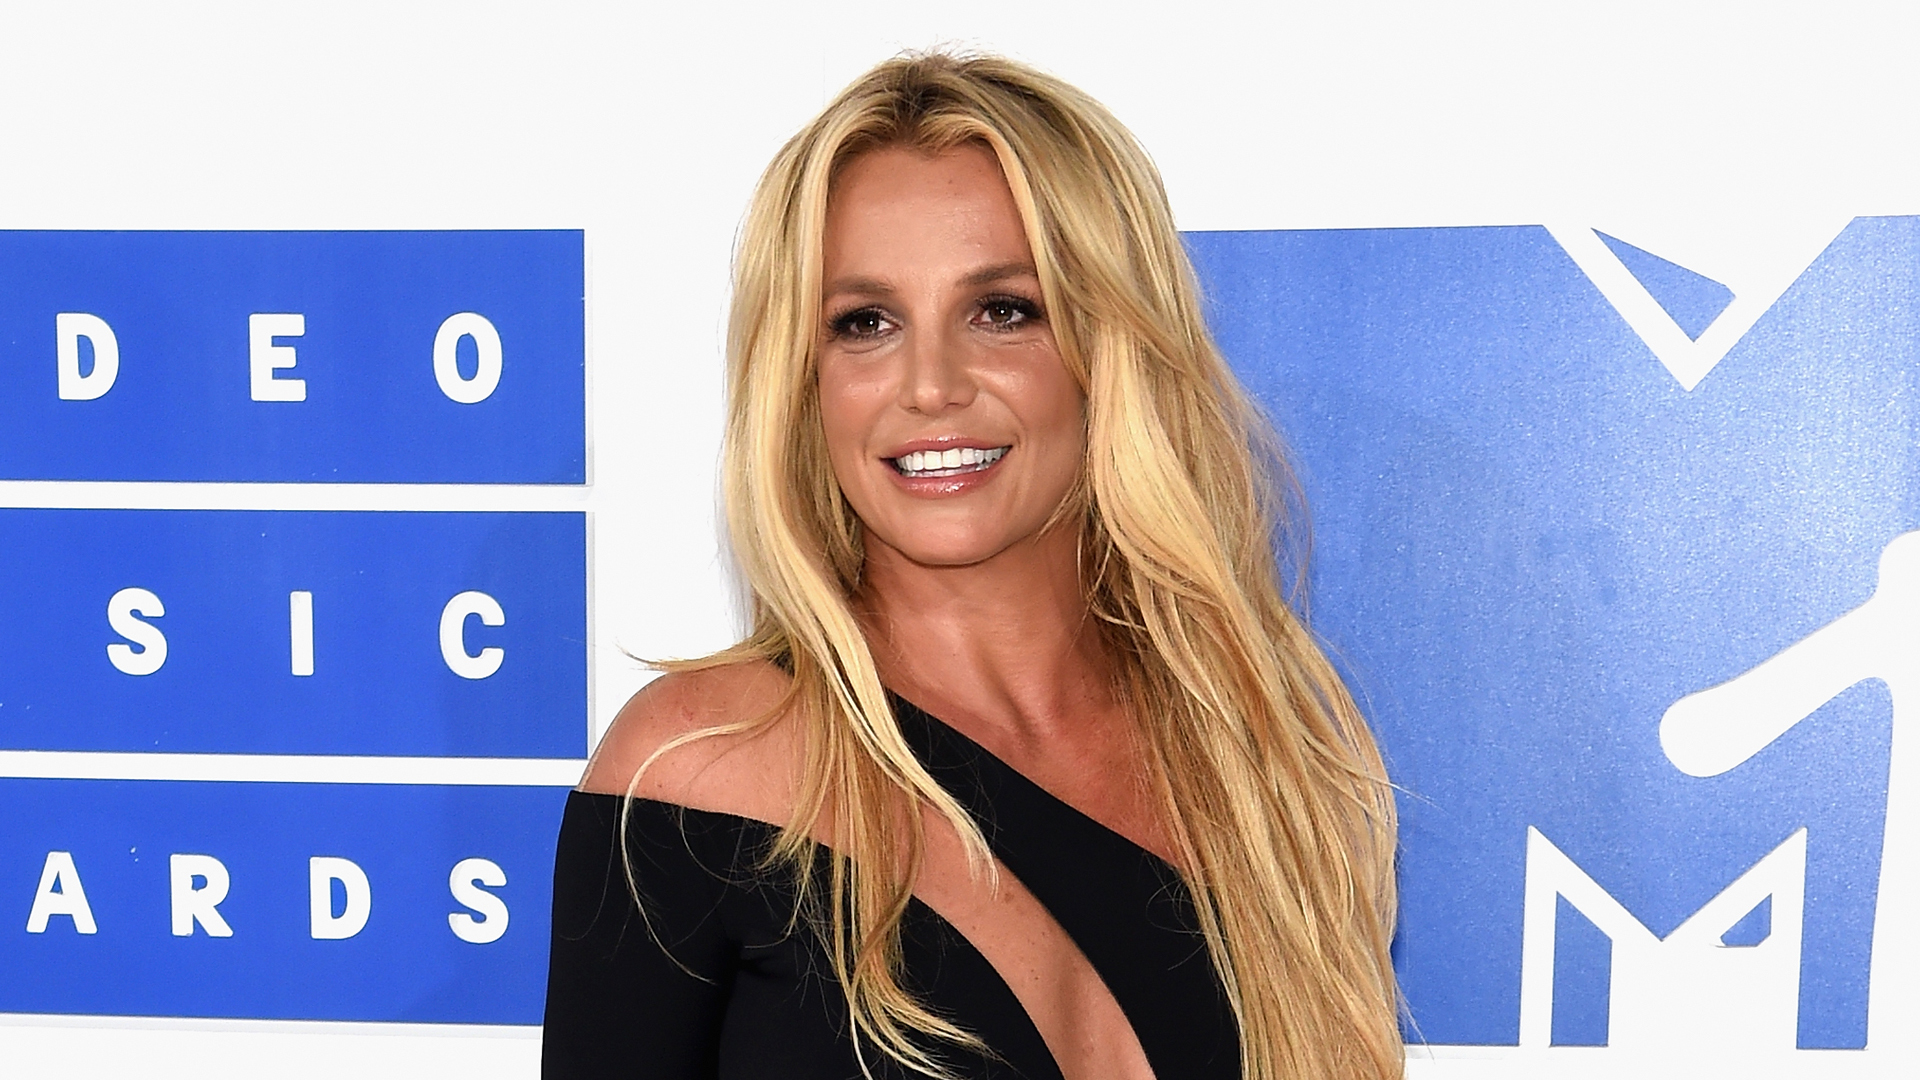 Britney Spears attends the 2016 MTV Video Music Awards at Madison Square Garden on August 28, 2016 in New York City. (Credit: Jamie McCarthy/Getty Images)